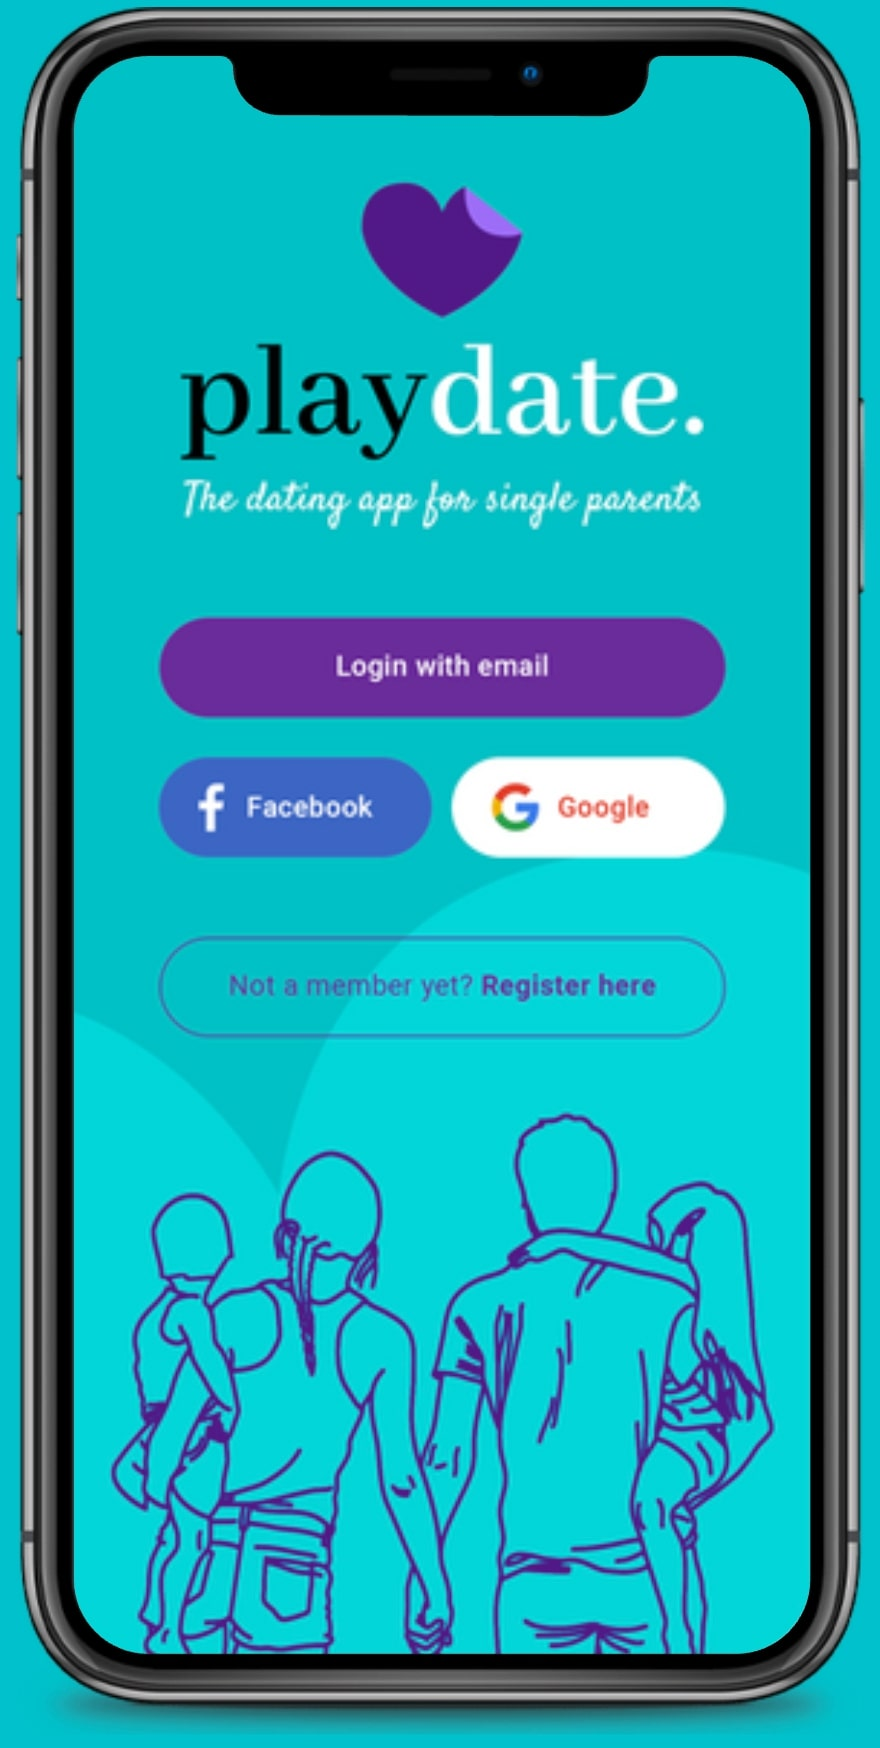 Dating apps for single parents, Playdate app